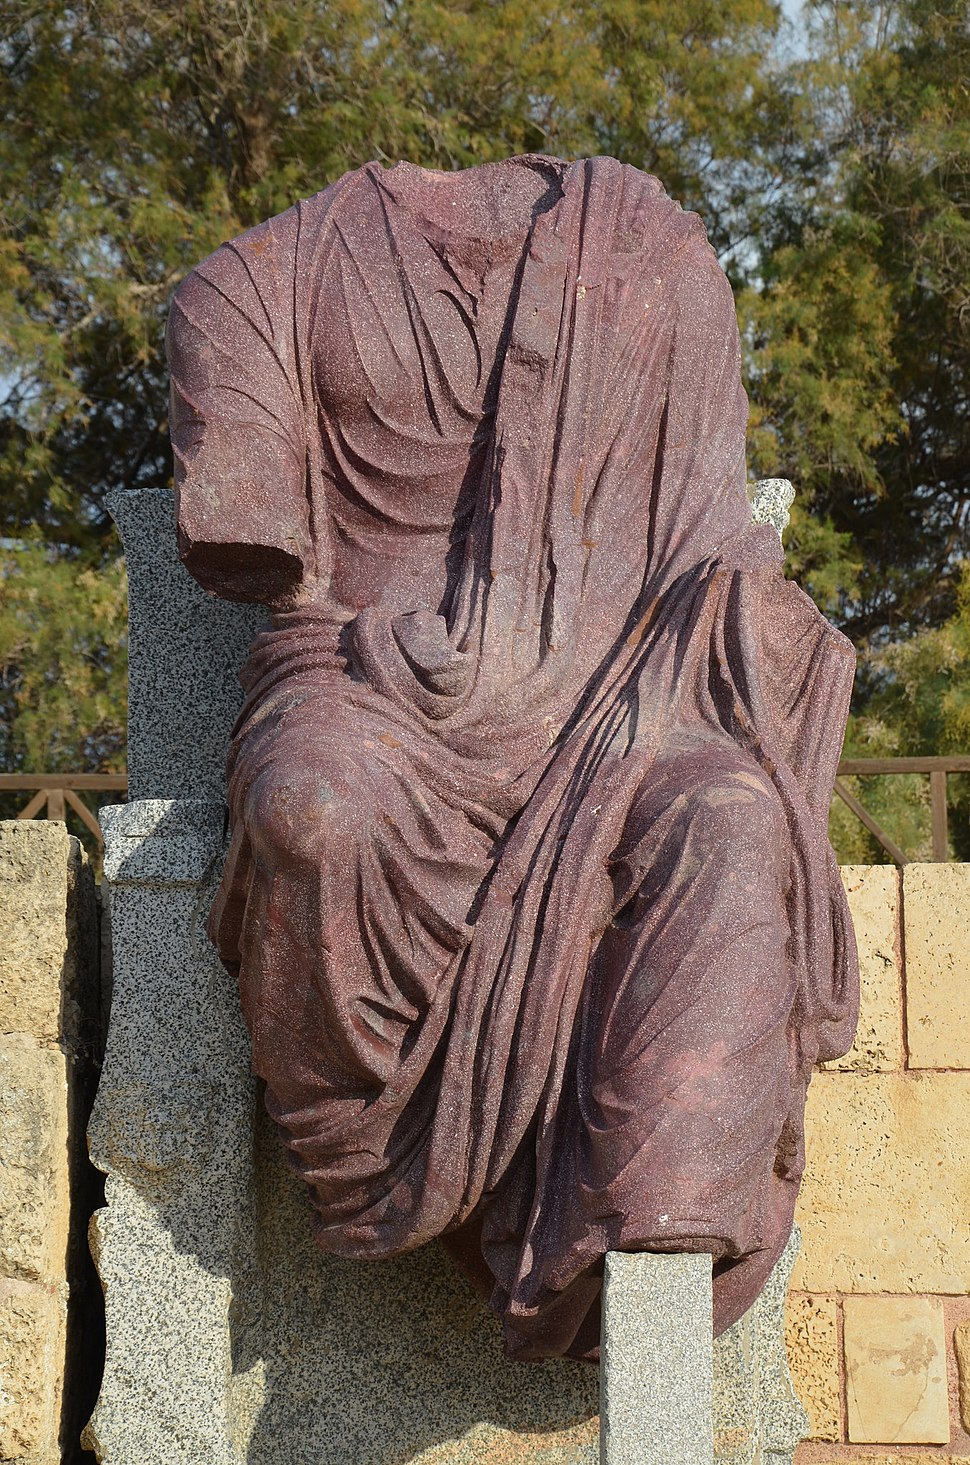 Statue of Hadrian in Caesarea